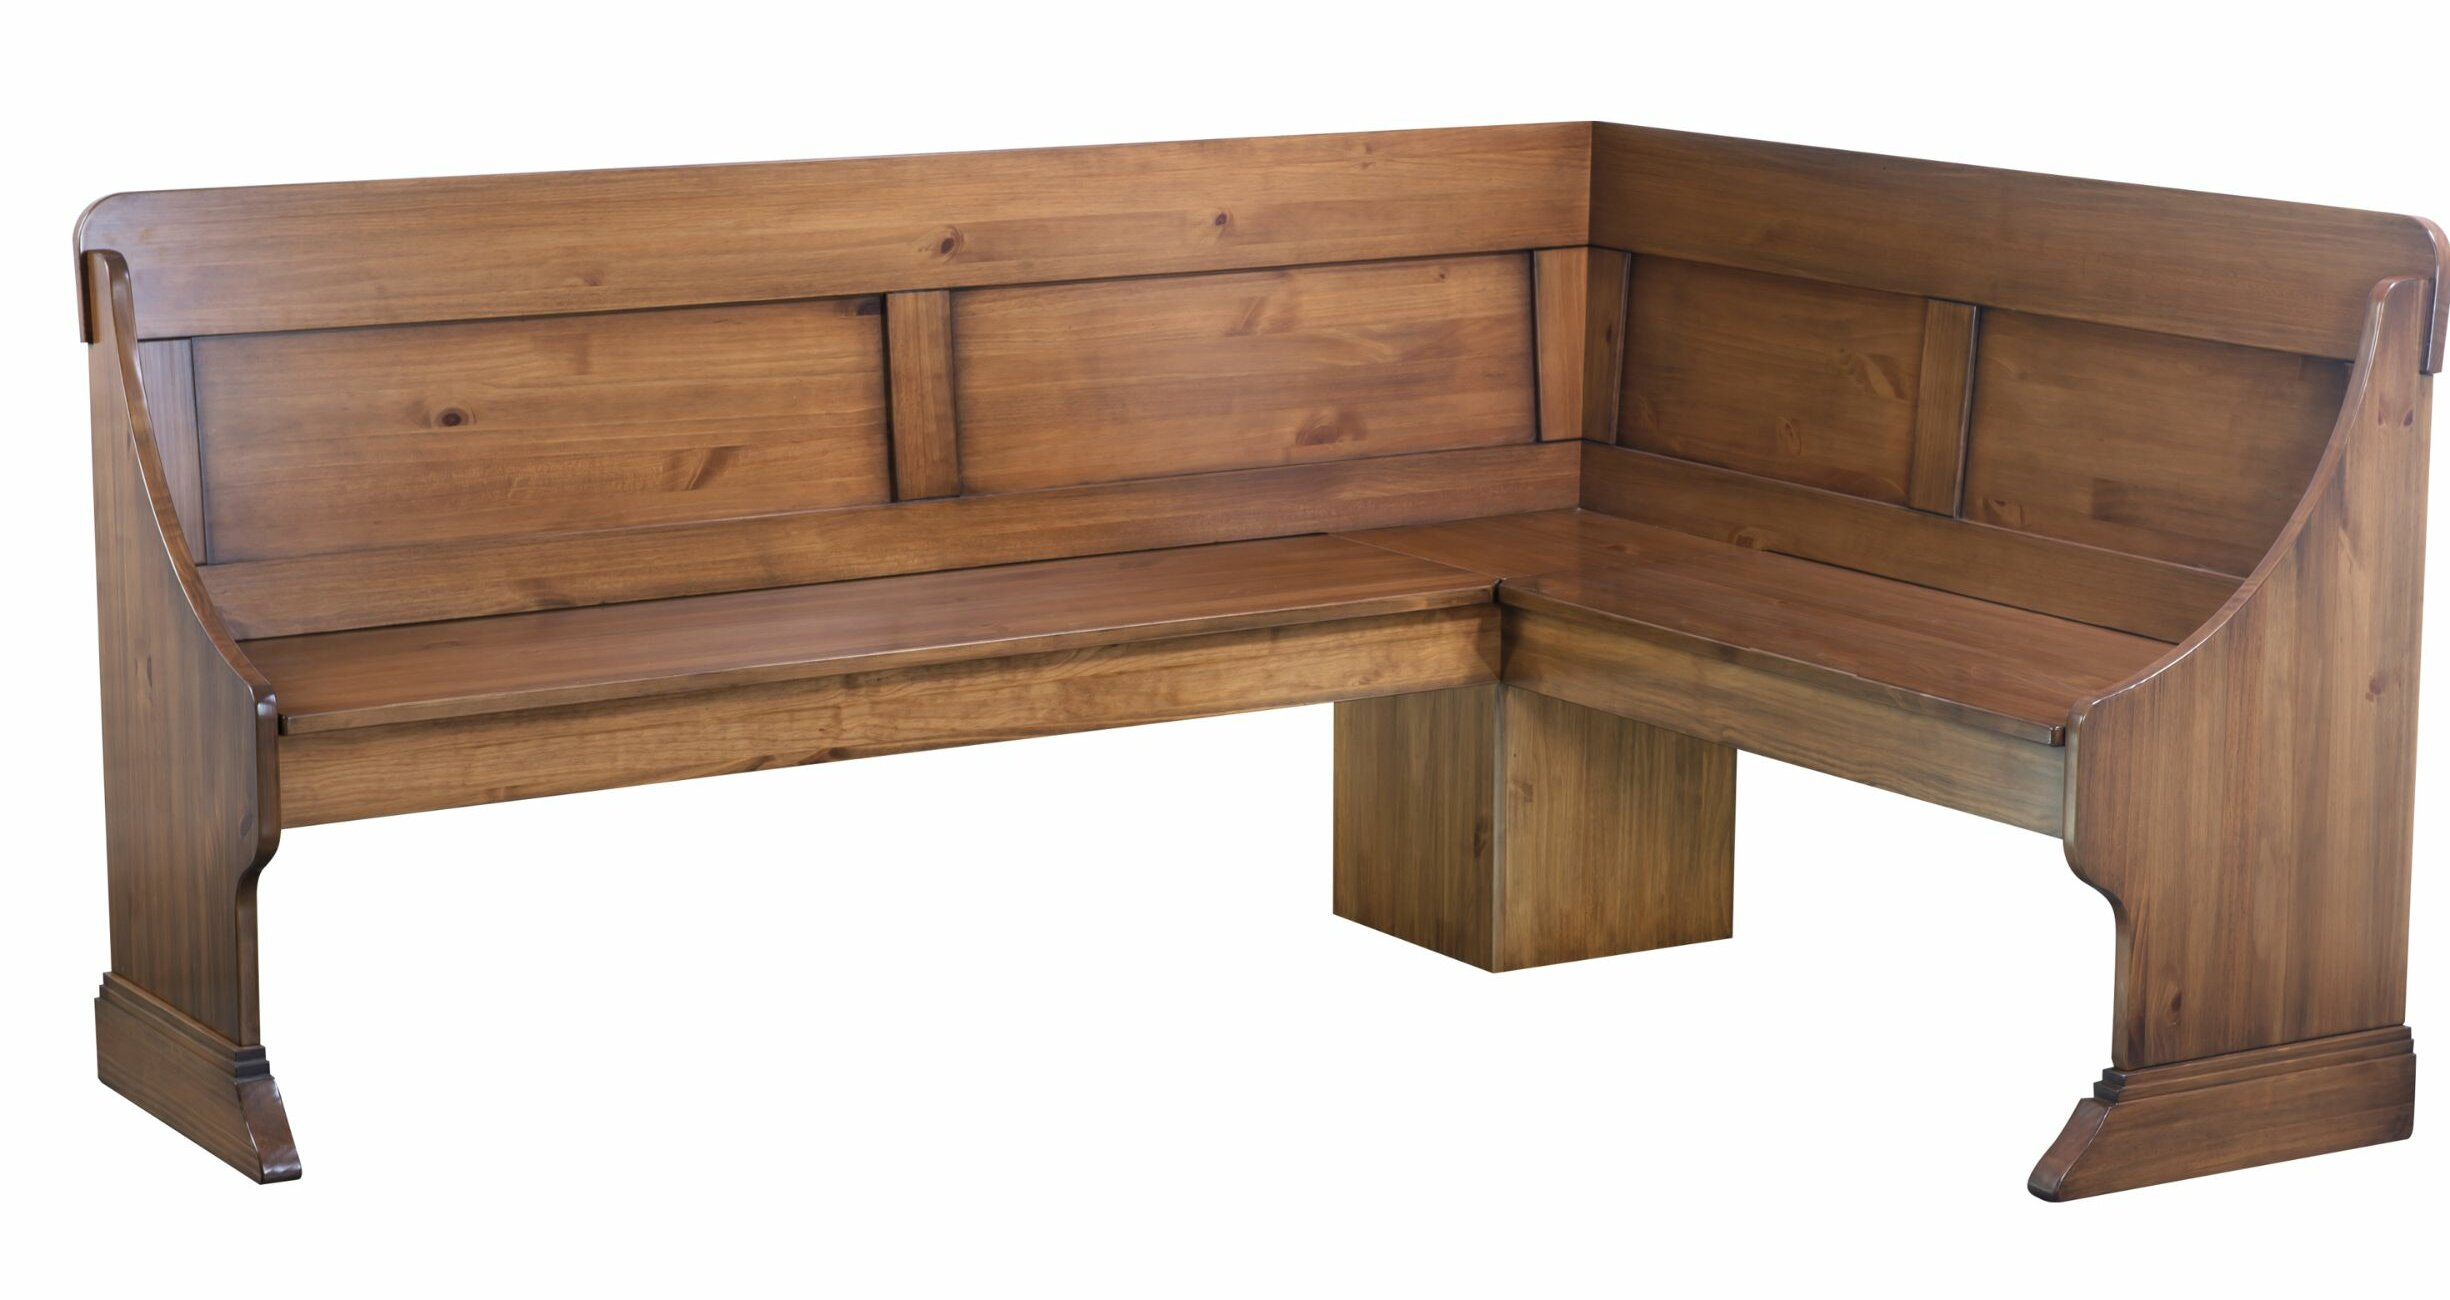 Cool 30 Inch High Bench Wayfair Ca Andrewgaddart Wooden Chair Designs For Living Room Andrewgaddartcom